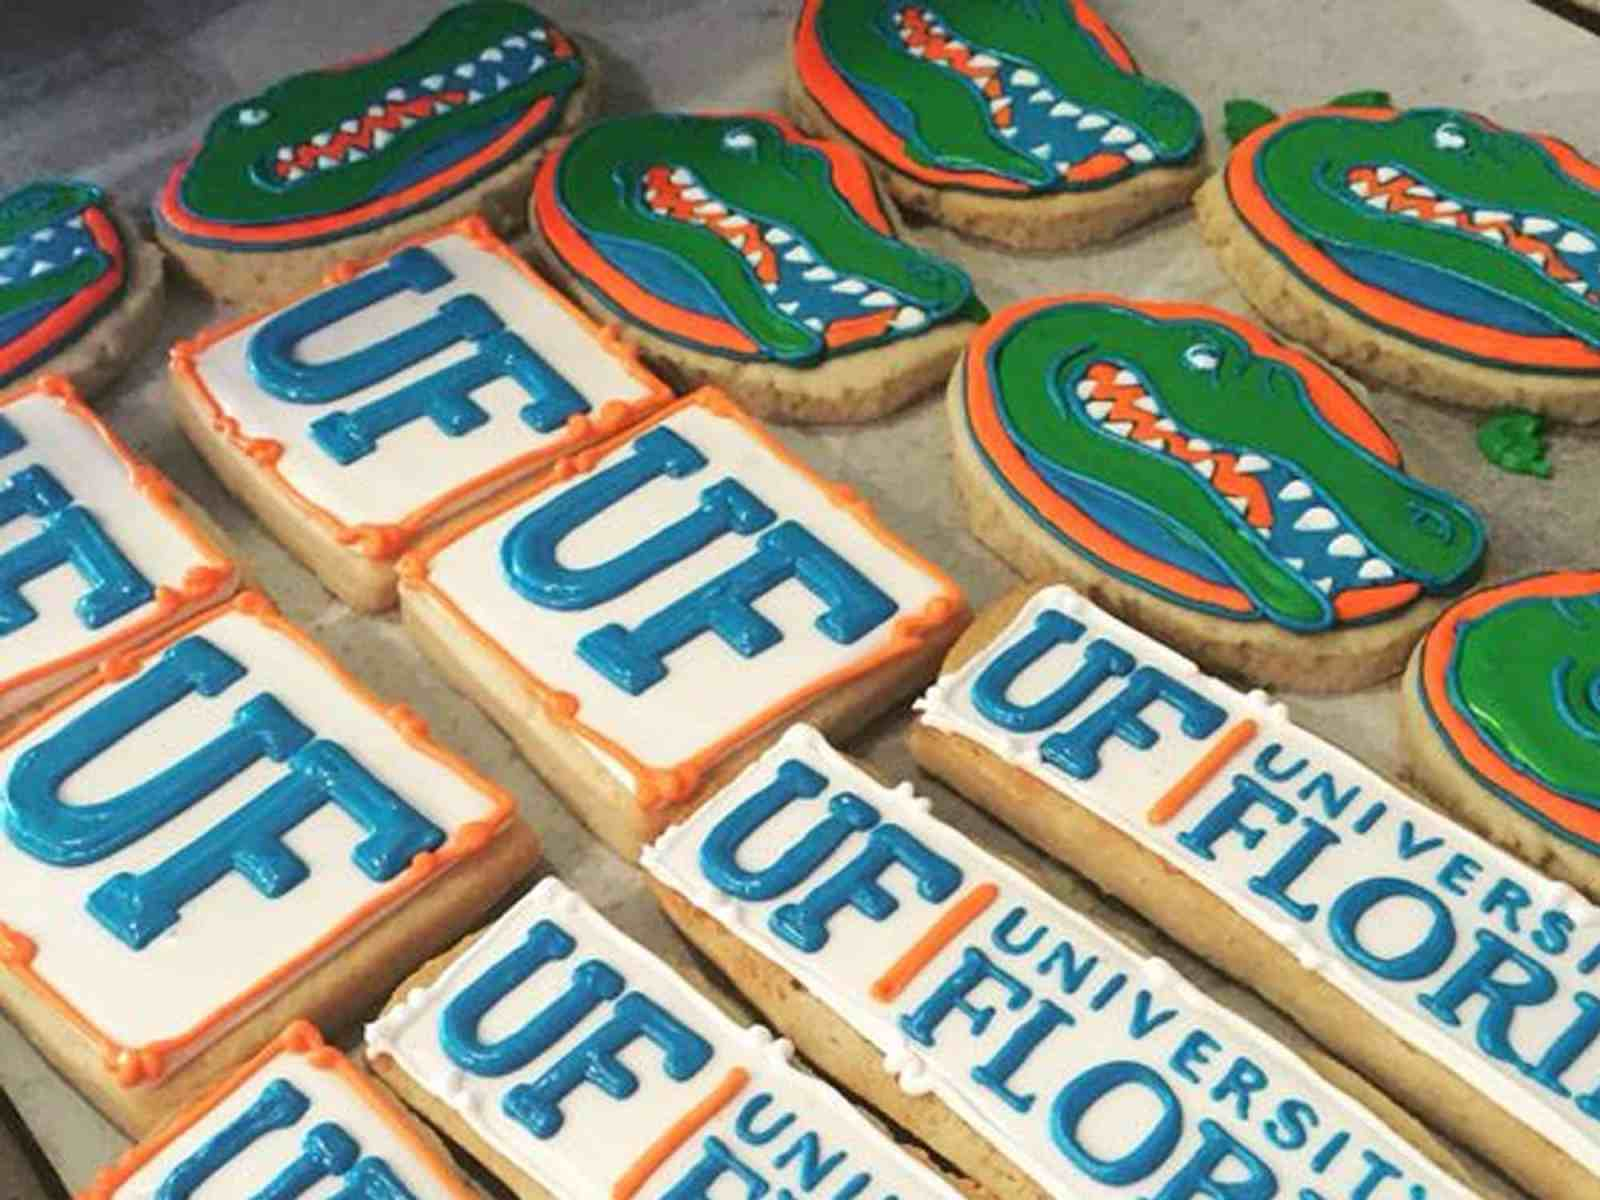 Students at the University of Florida would never be caught dead saying these things out loud! If you're a Gator, you definitely don't say this stuff!